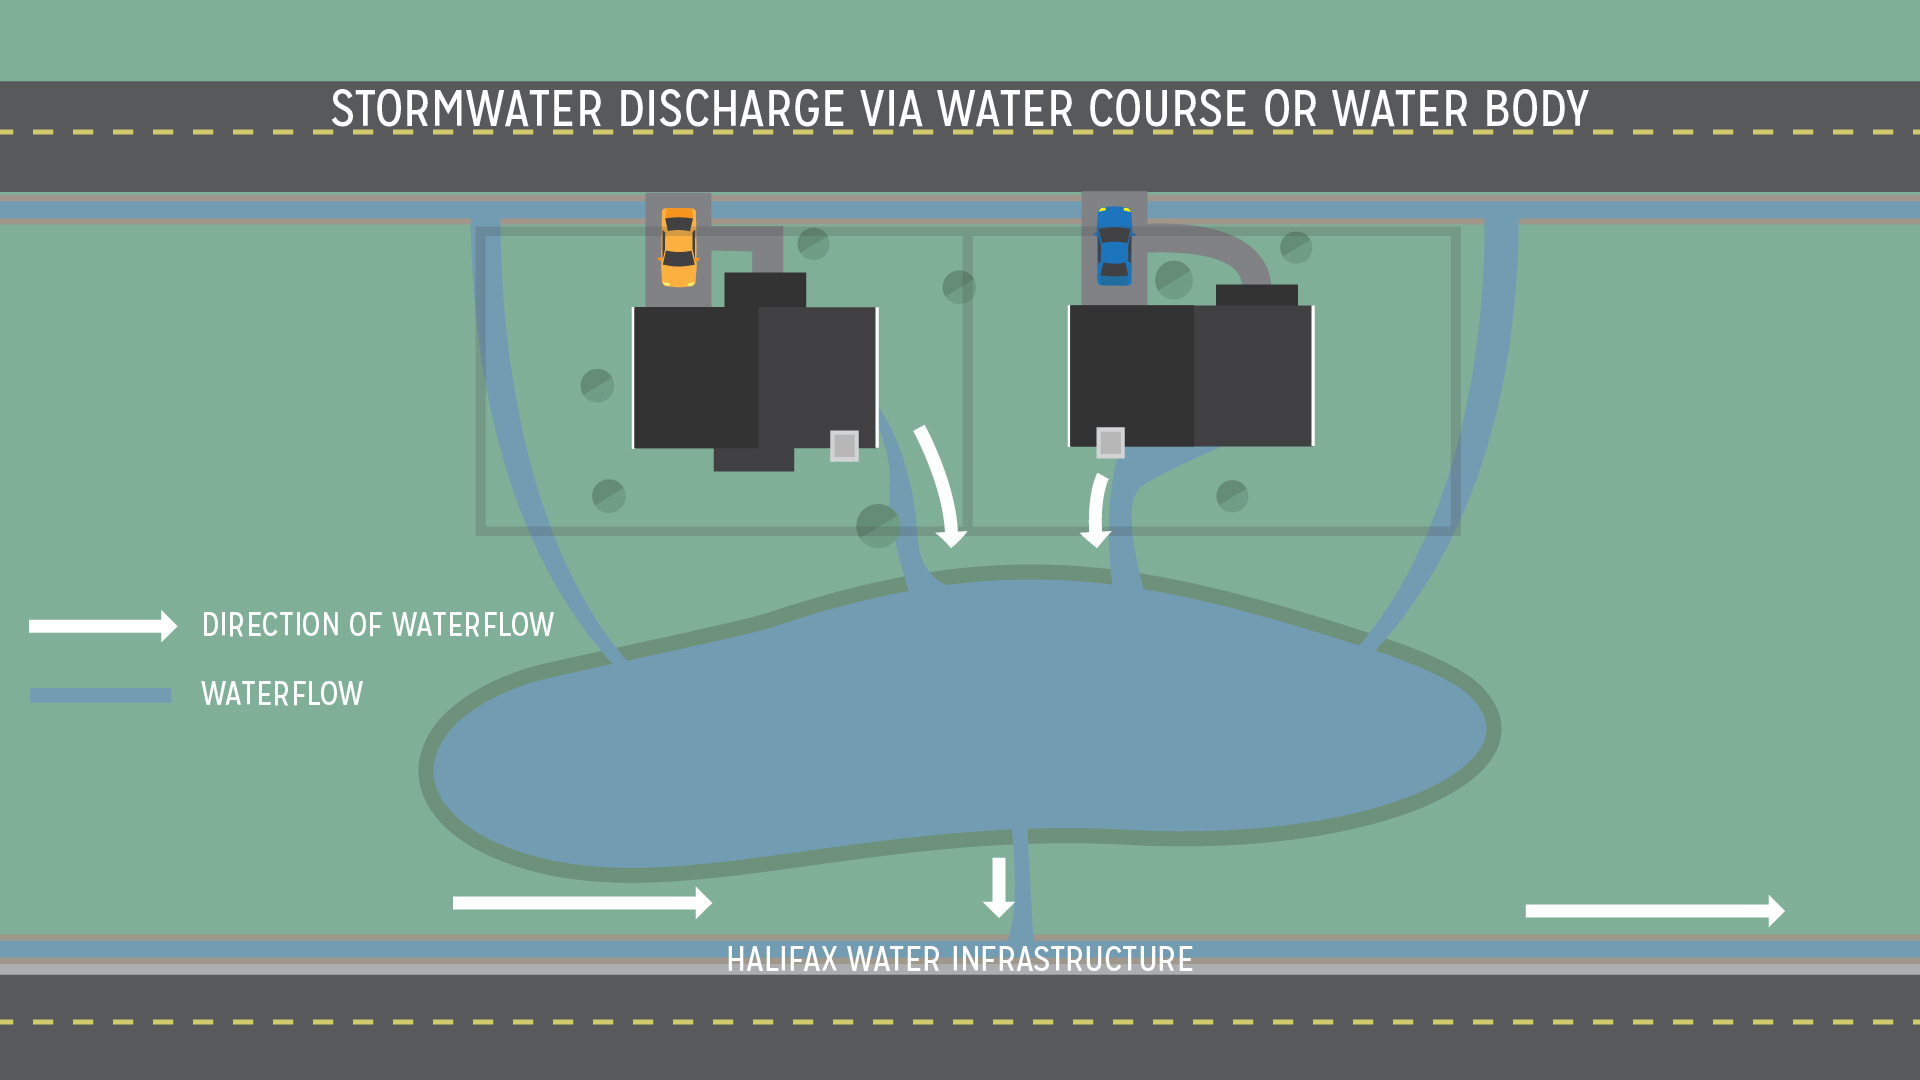 Image showing atormwater discharge via water course or water body